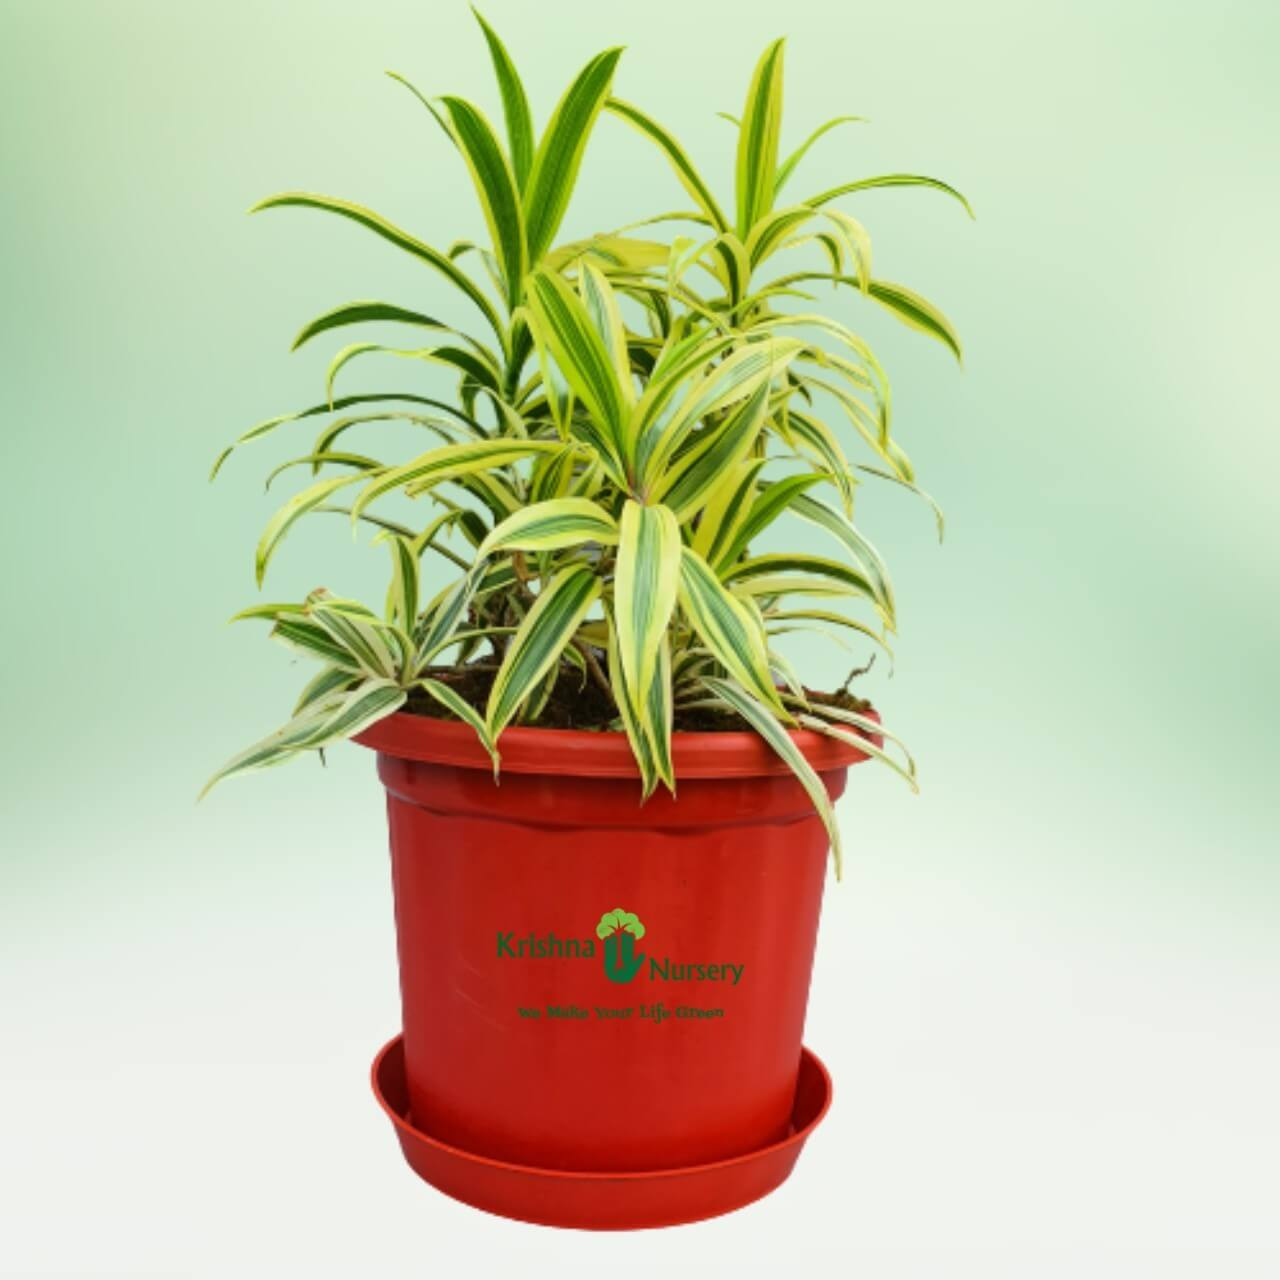 Song of India Golden - 10 Inch - Red Pot